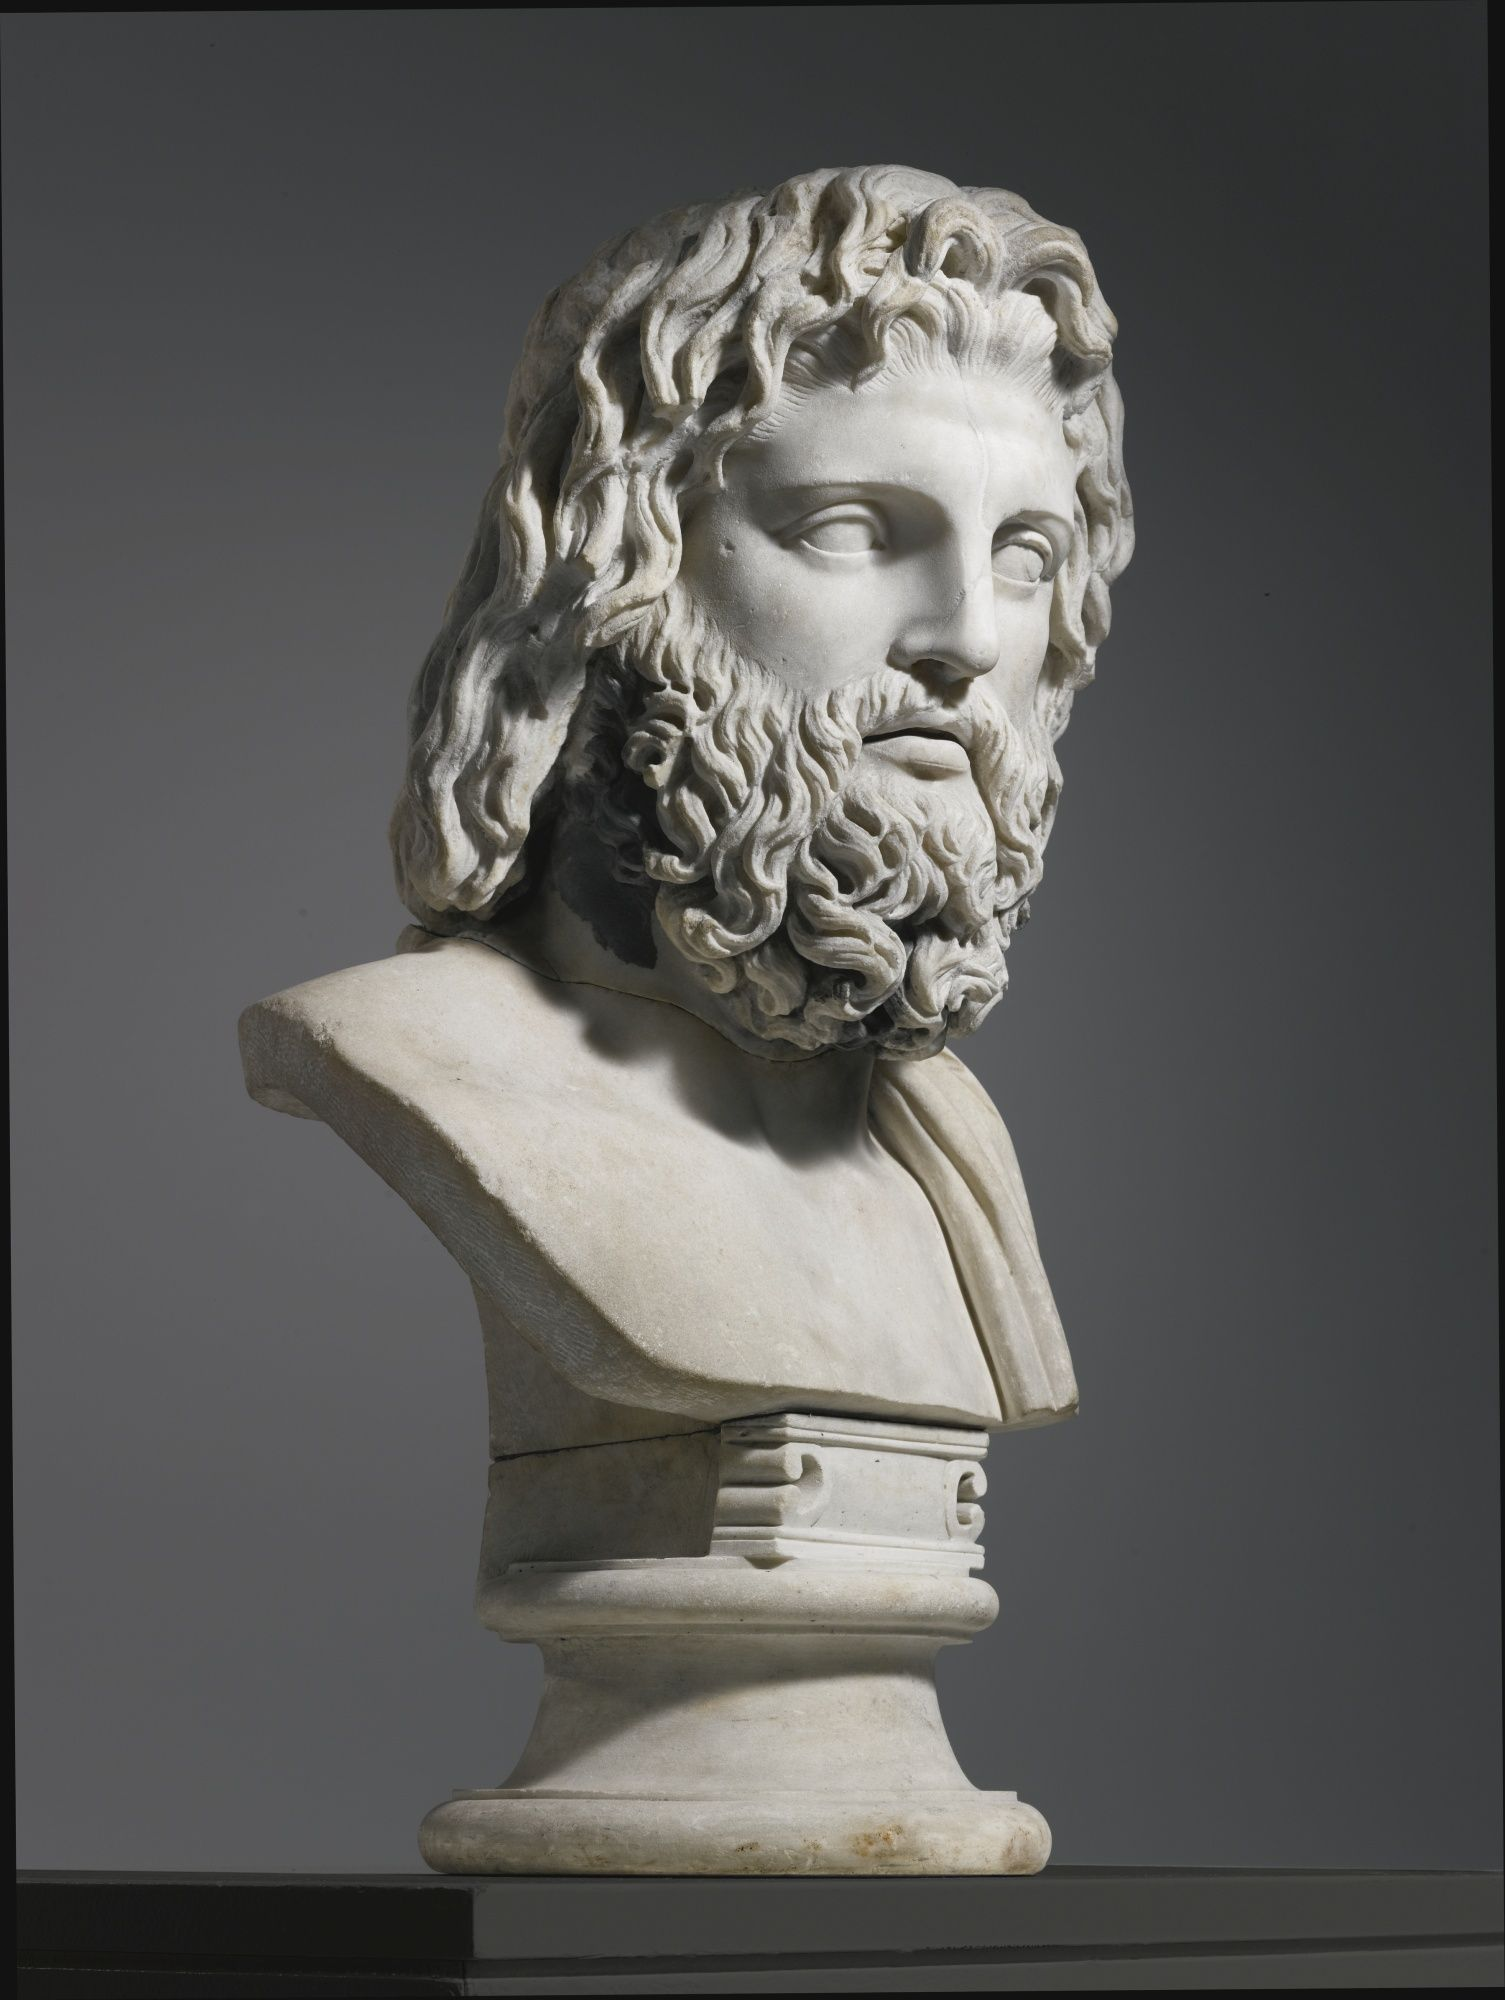 A Monumental Marble Bust Of Zeus Or Asklepios The Head Roman Imperial 2nd Century A D The Socle Shoulders And Rest Marble Bust Zeus Statue Antique Statue